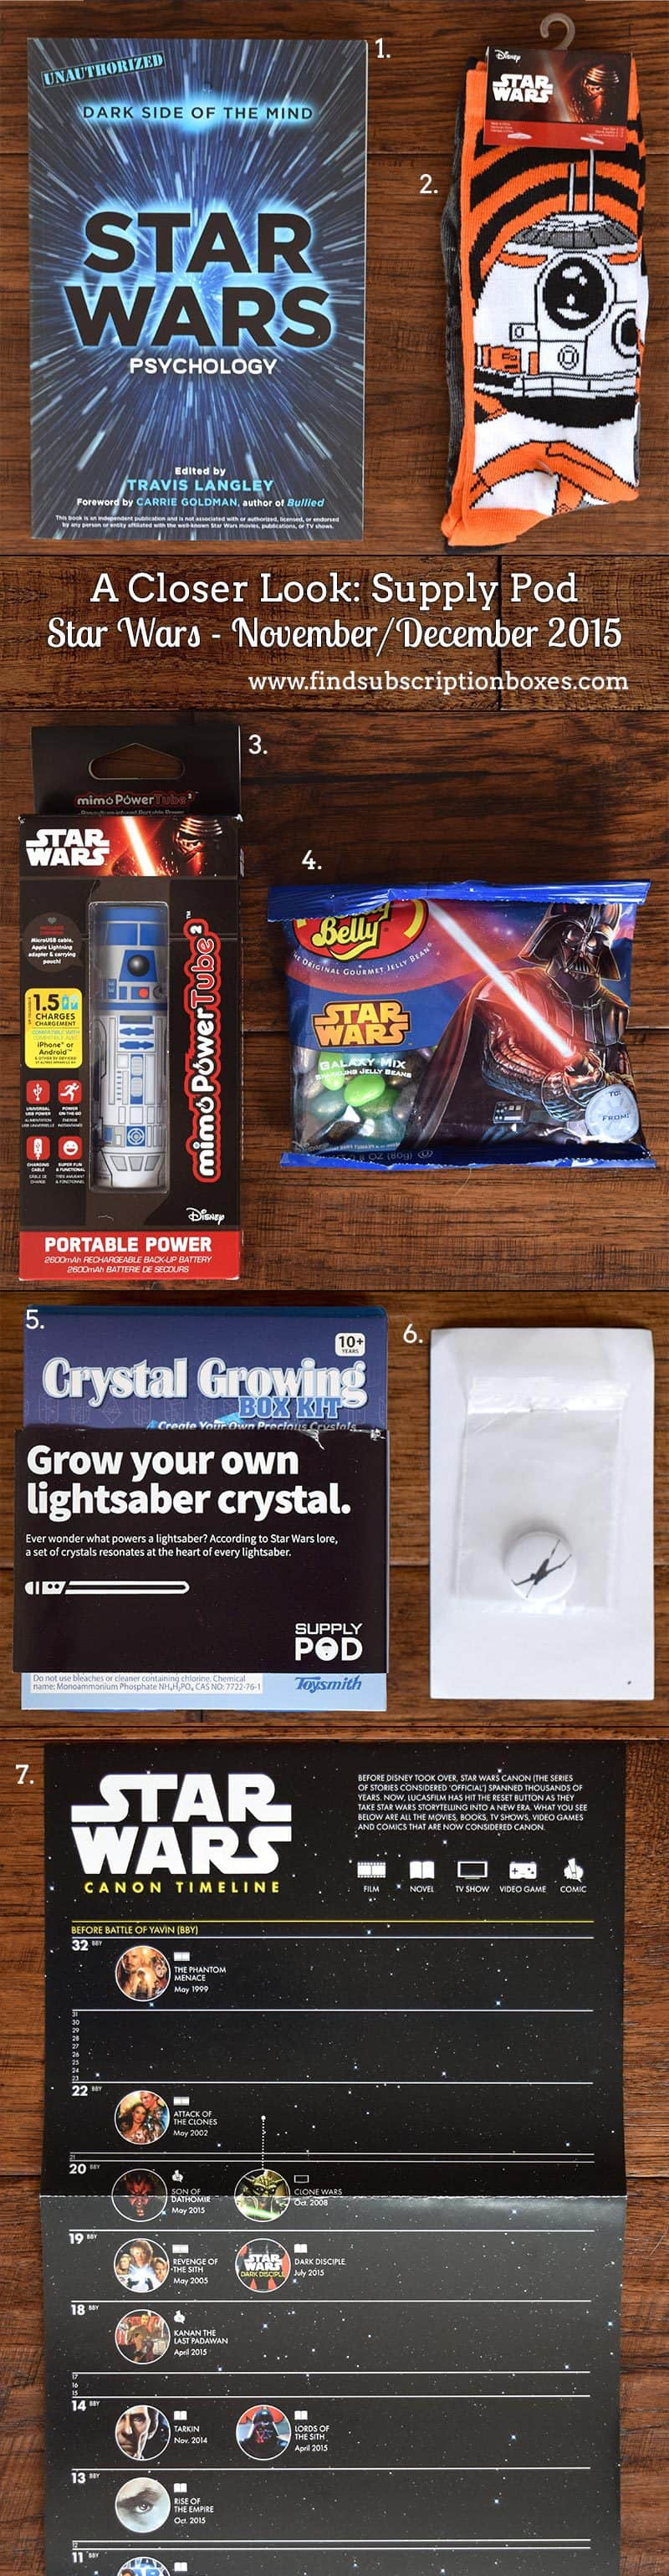 December 2015 Supply Pod Review - Star Wars - Inside the Box